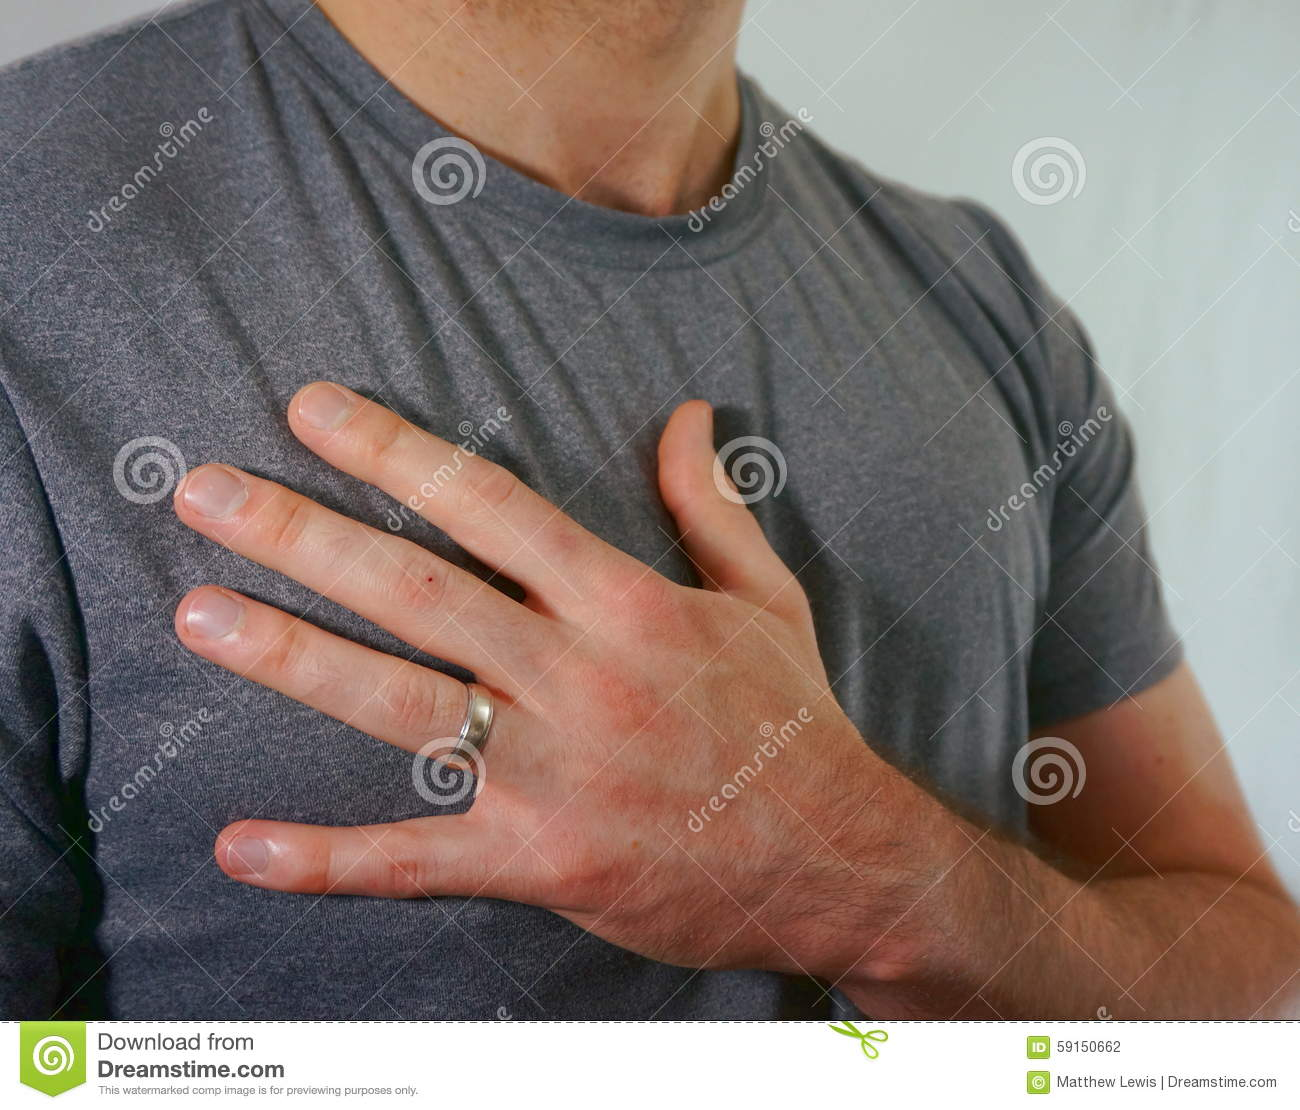 Married Man Wearing Wedding Ring On Hand Stock Photo Image of